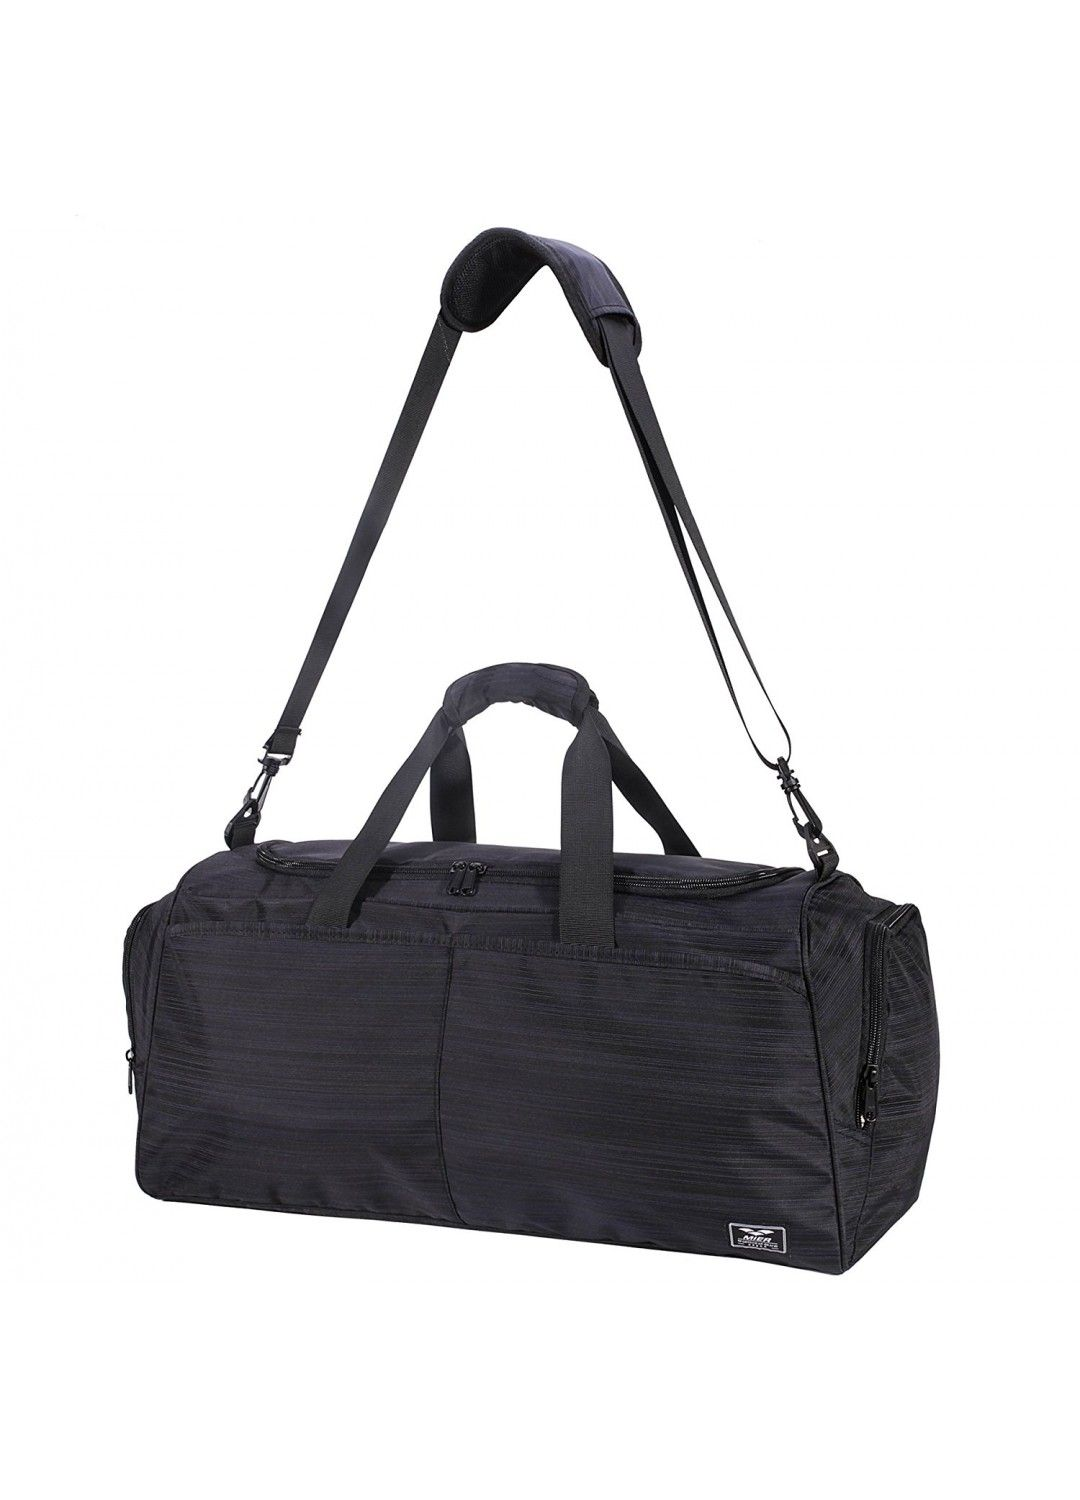 MIER Gym Bag for Women and Men Sports Duffle with shoe